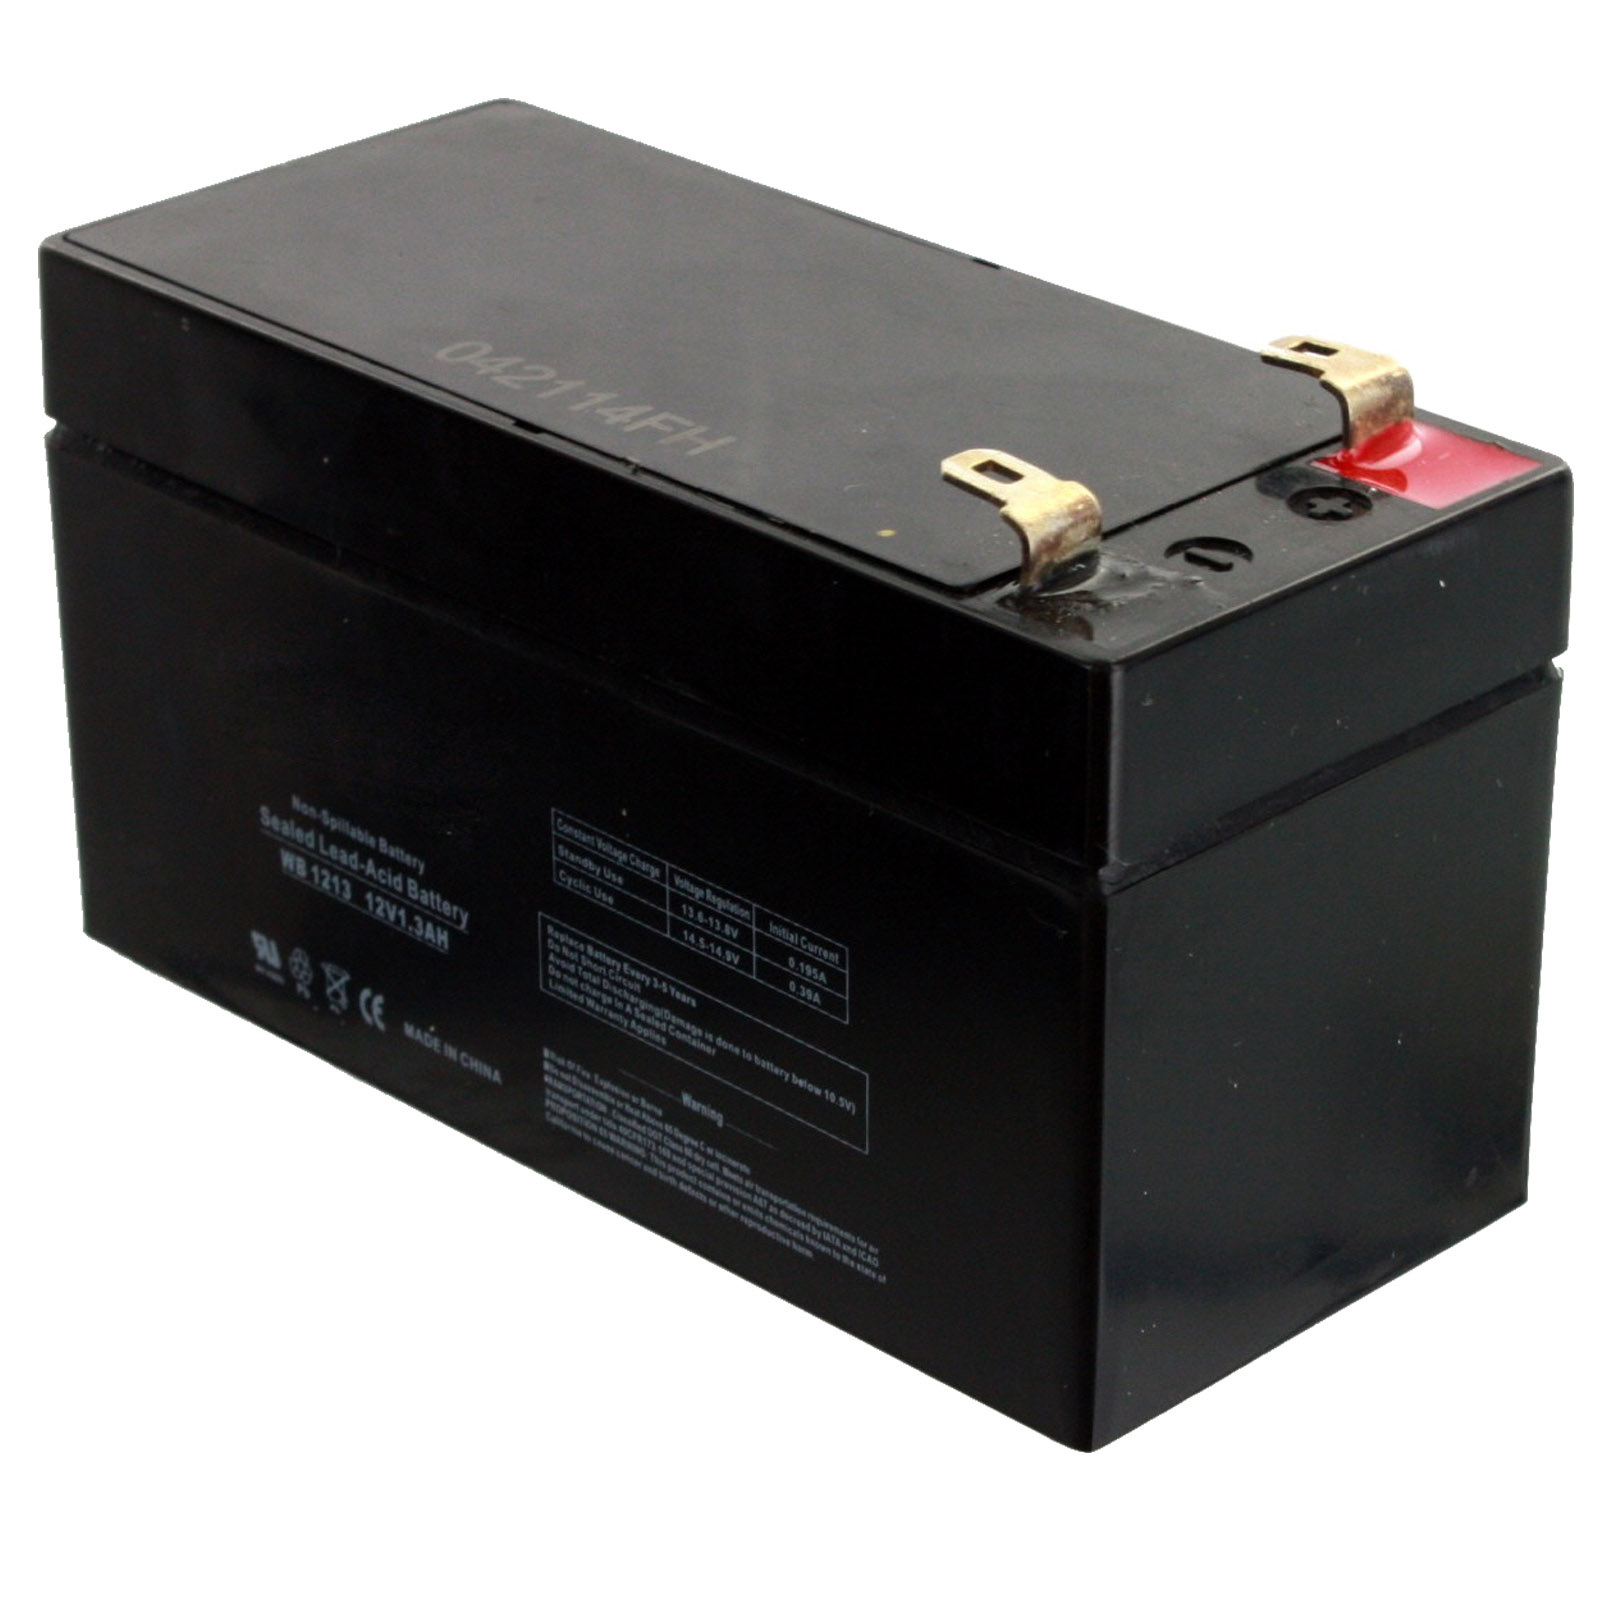 exell 12v 1 3ah sla battery rechargeable agm replaces. Black Bedroom Furniture Sets. Home Design Ideas